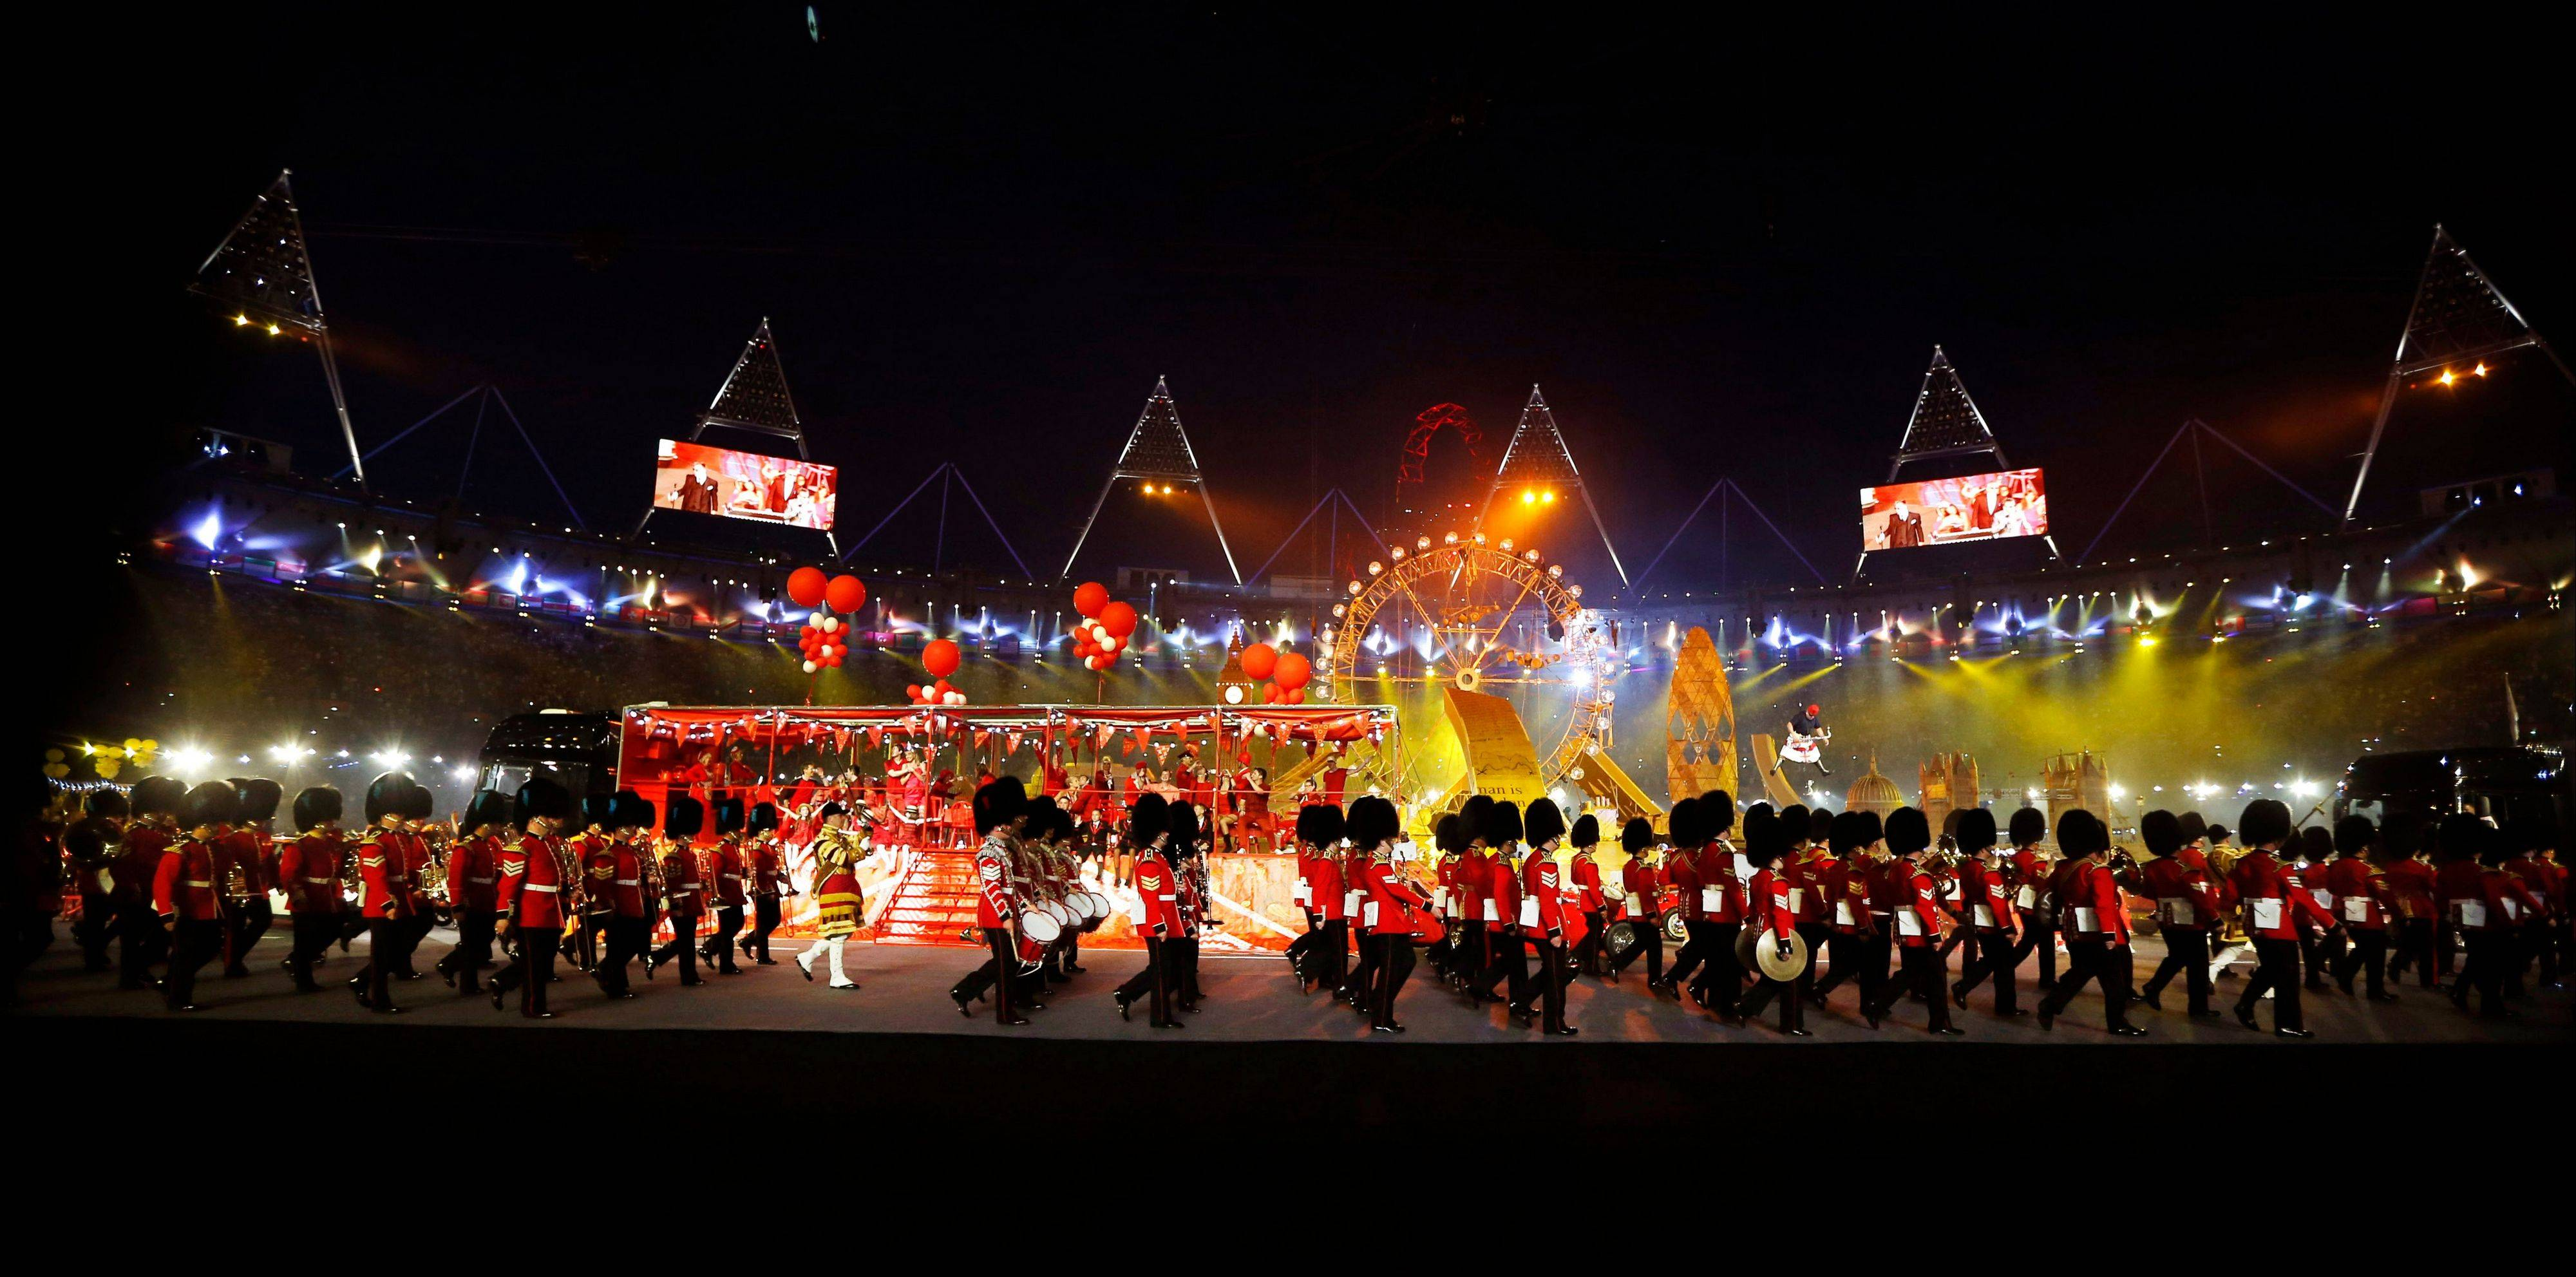 A military marching band performs during the Closing Ceremony at the 2012 Summer Olympics.